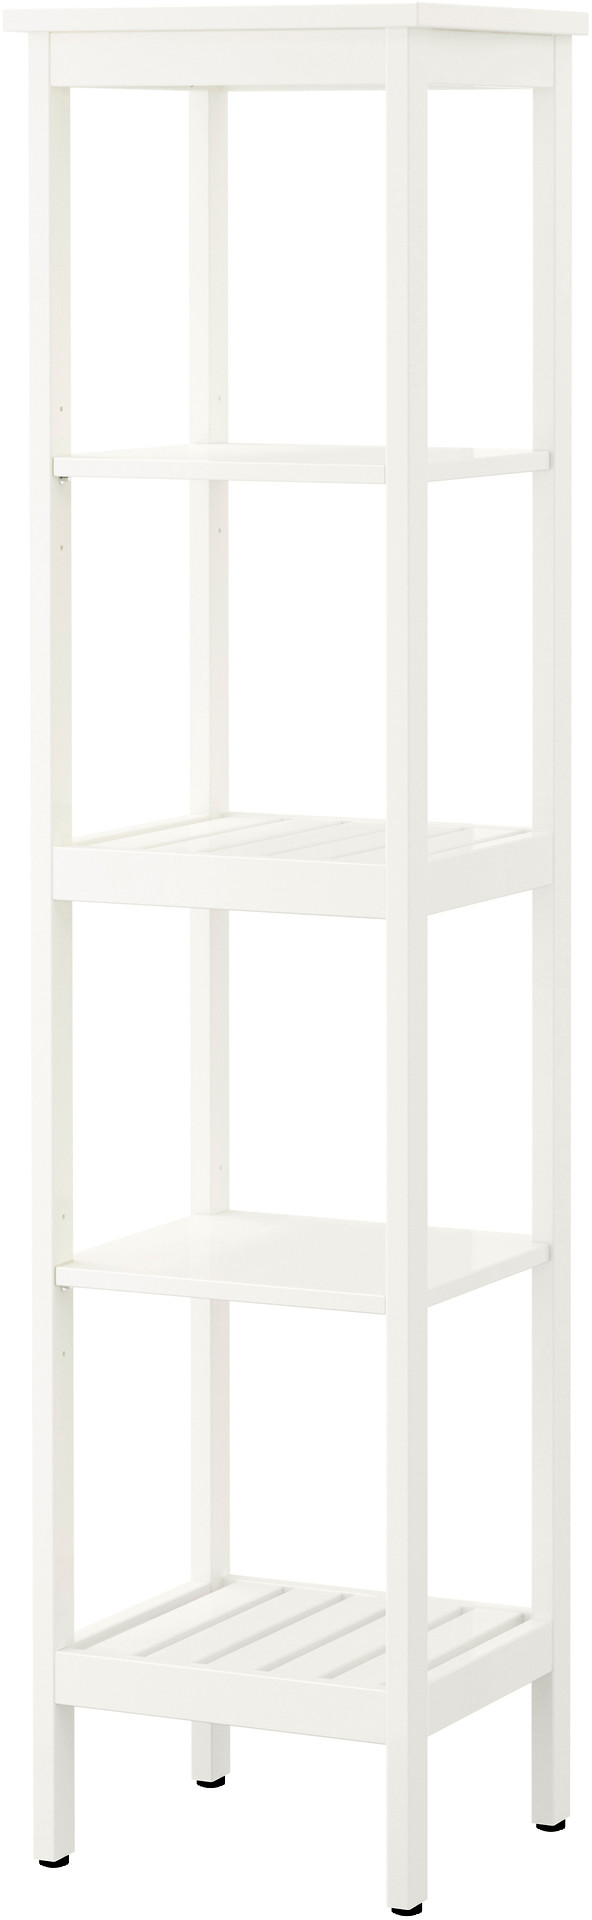 HEMNES Shelving unit - white - IKEA